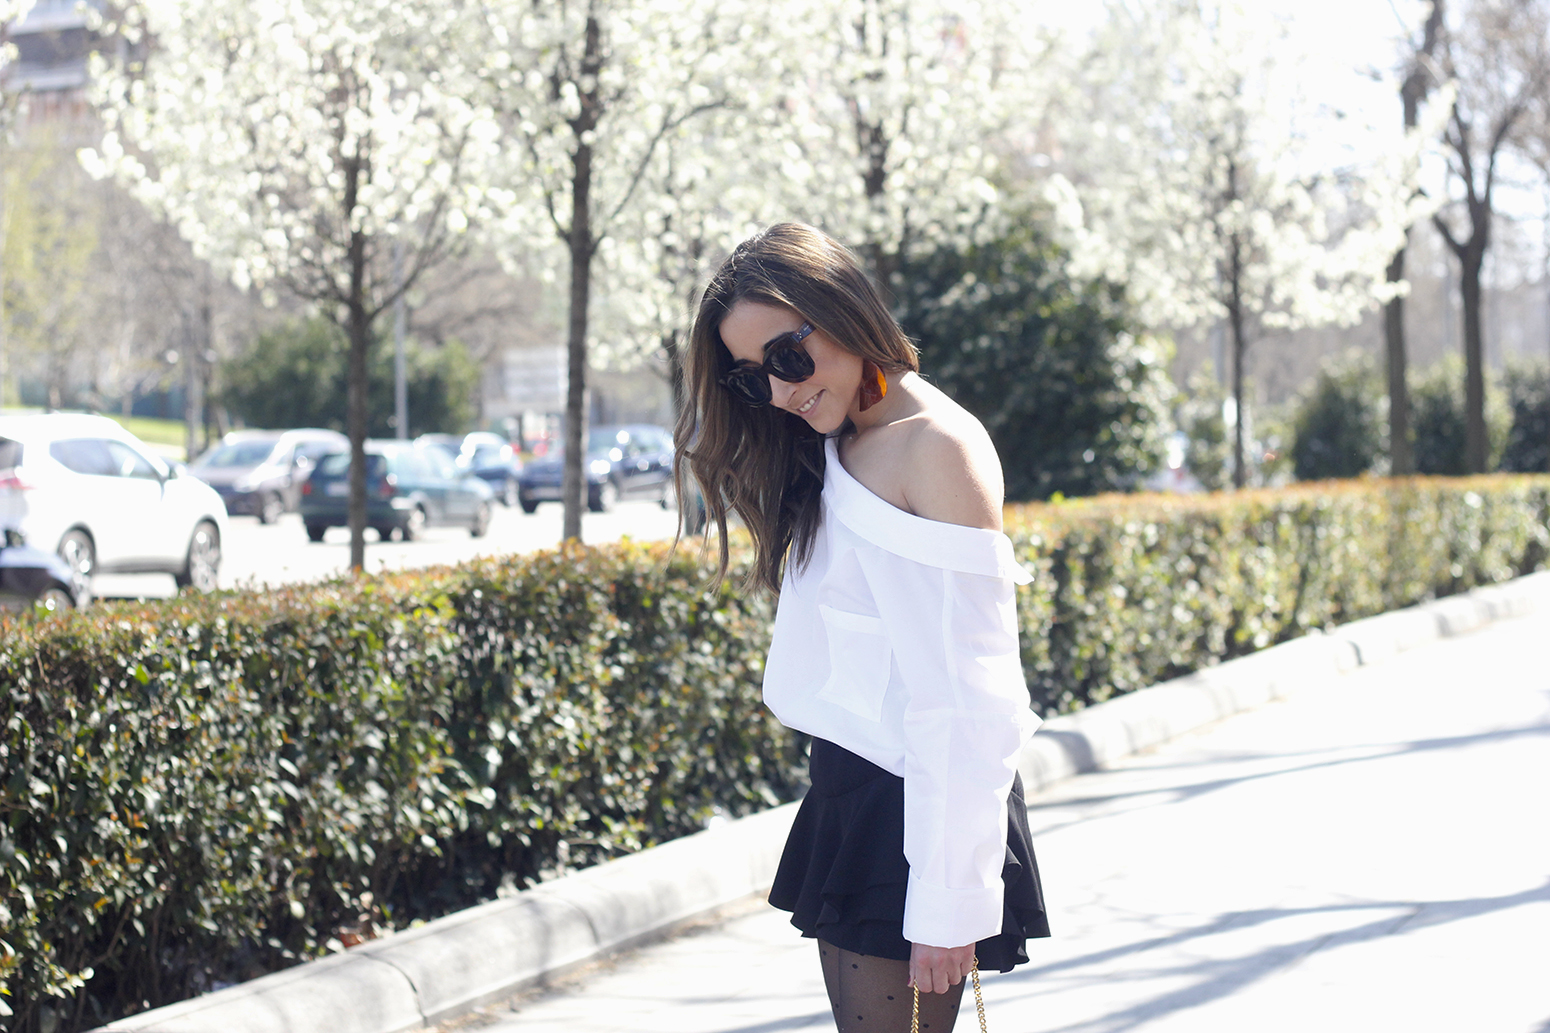 Ruffled shorts white shirt saint lauren bag céline outfit style04